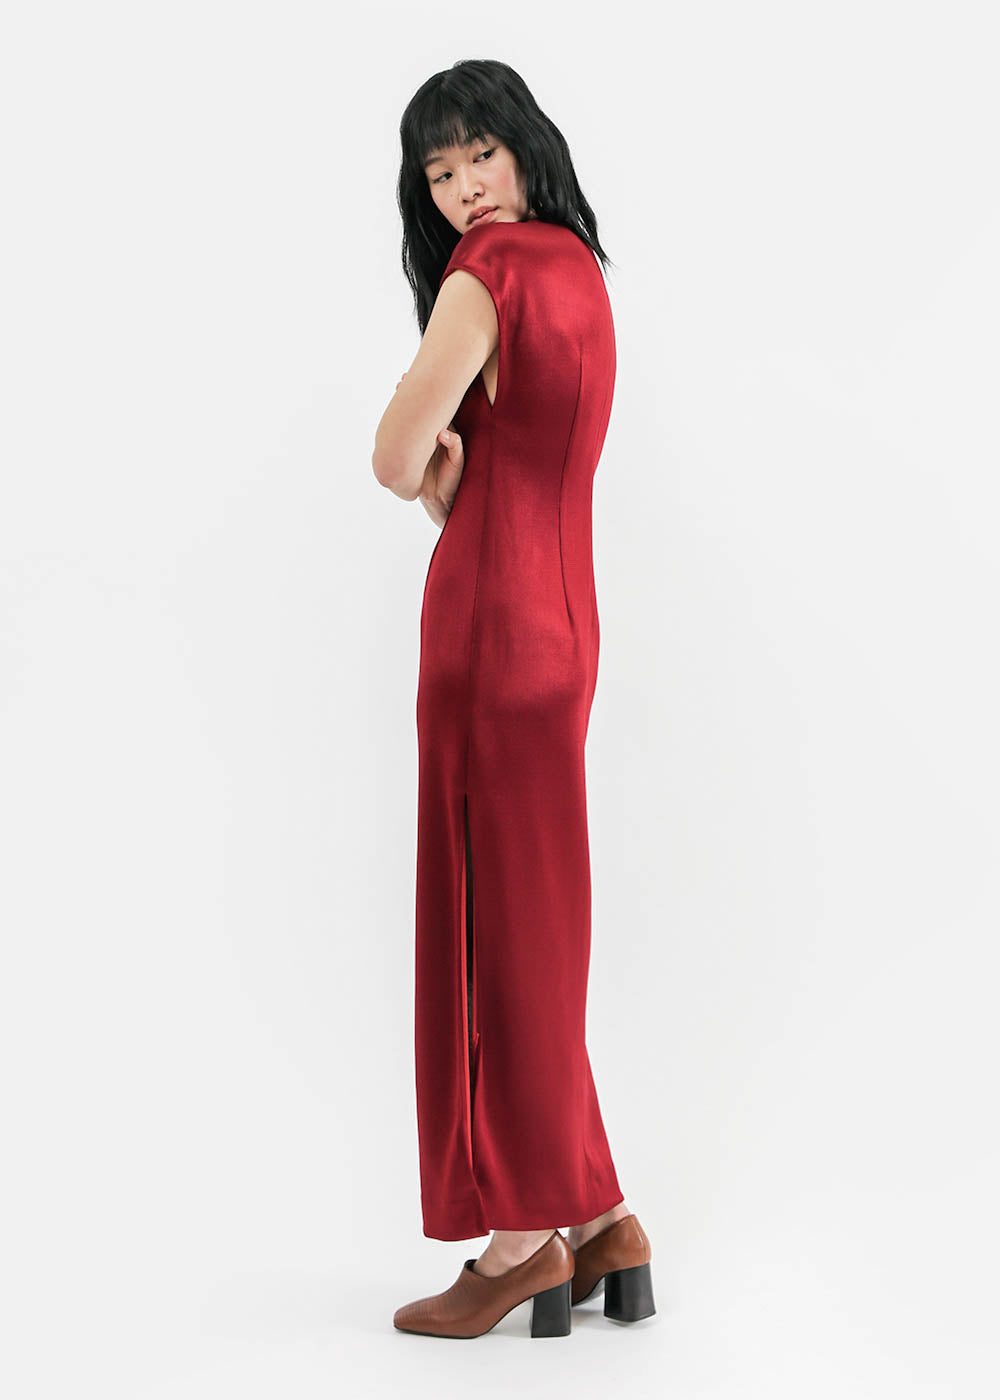 Suzanne Rae Jersey Dress with Slit — New Classics Studios